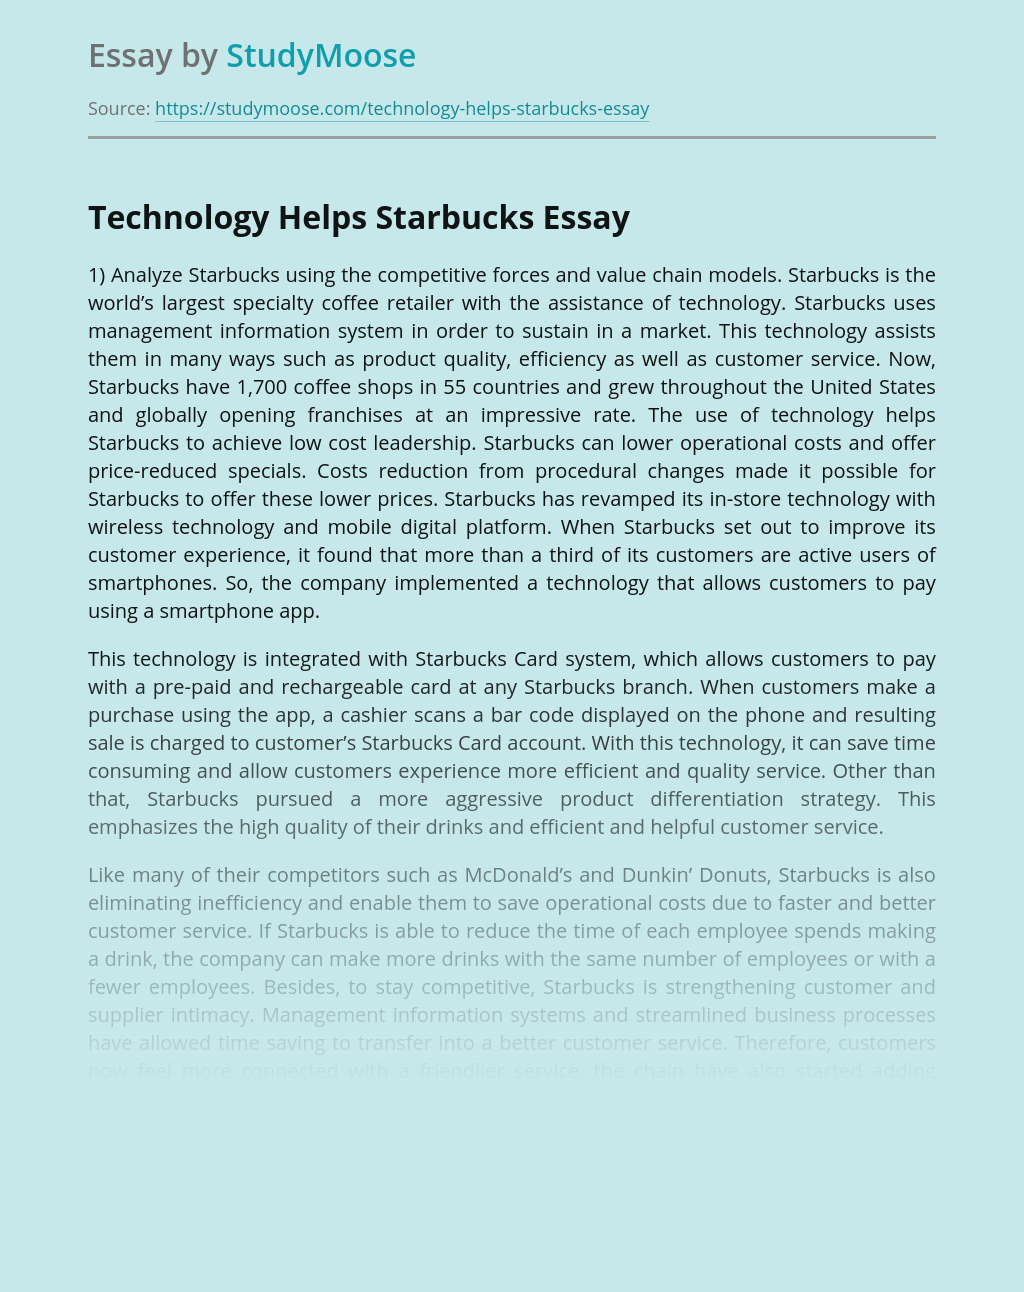 Technology Helps Starbucks